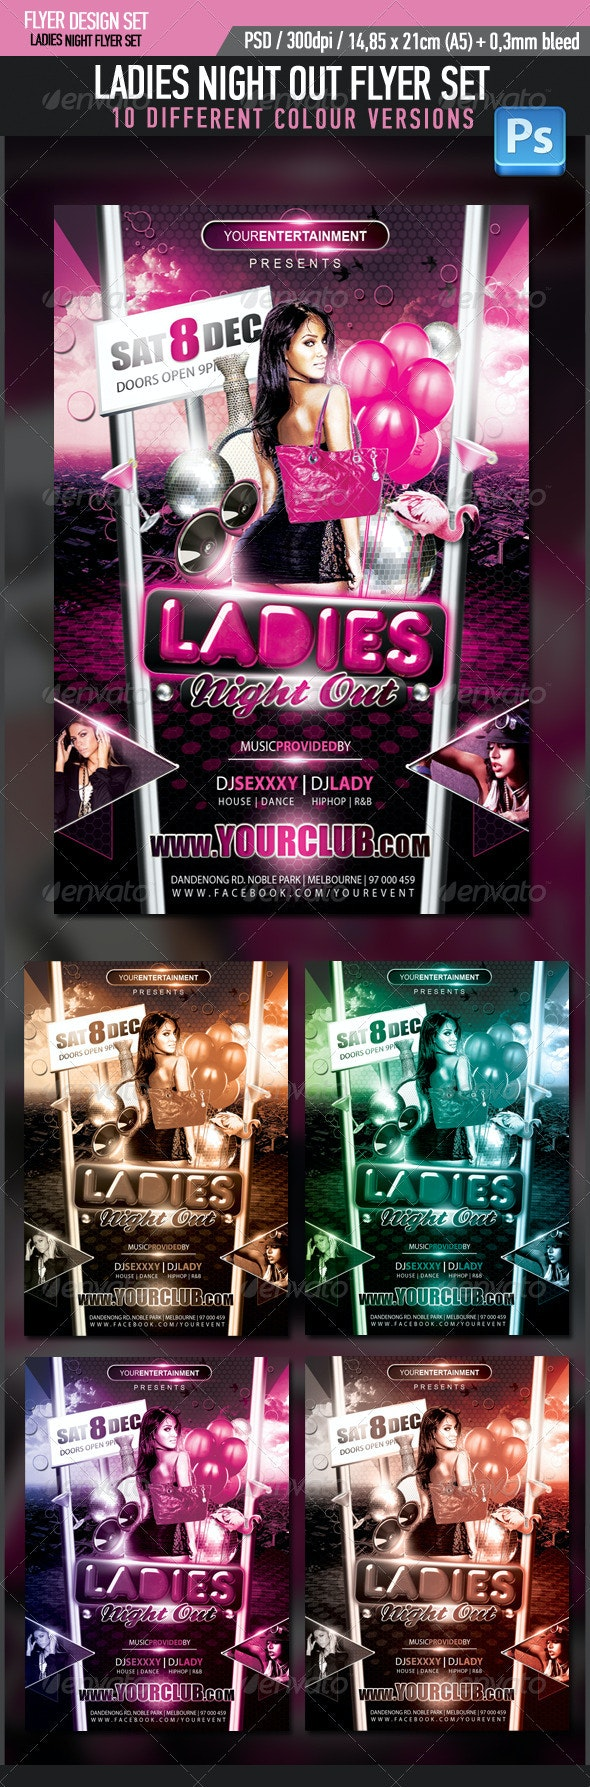 Ladies Night Out Flyer - Clubs & Parties Events